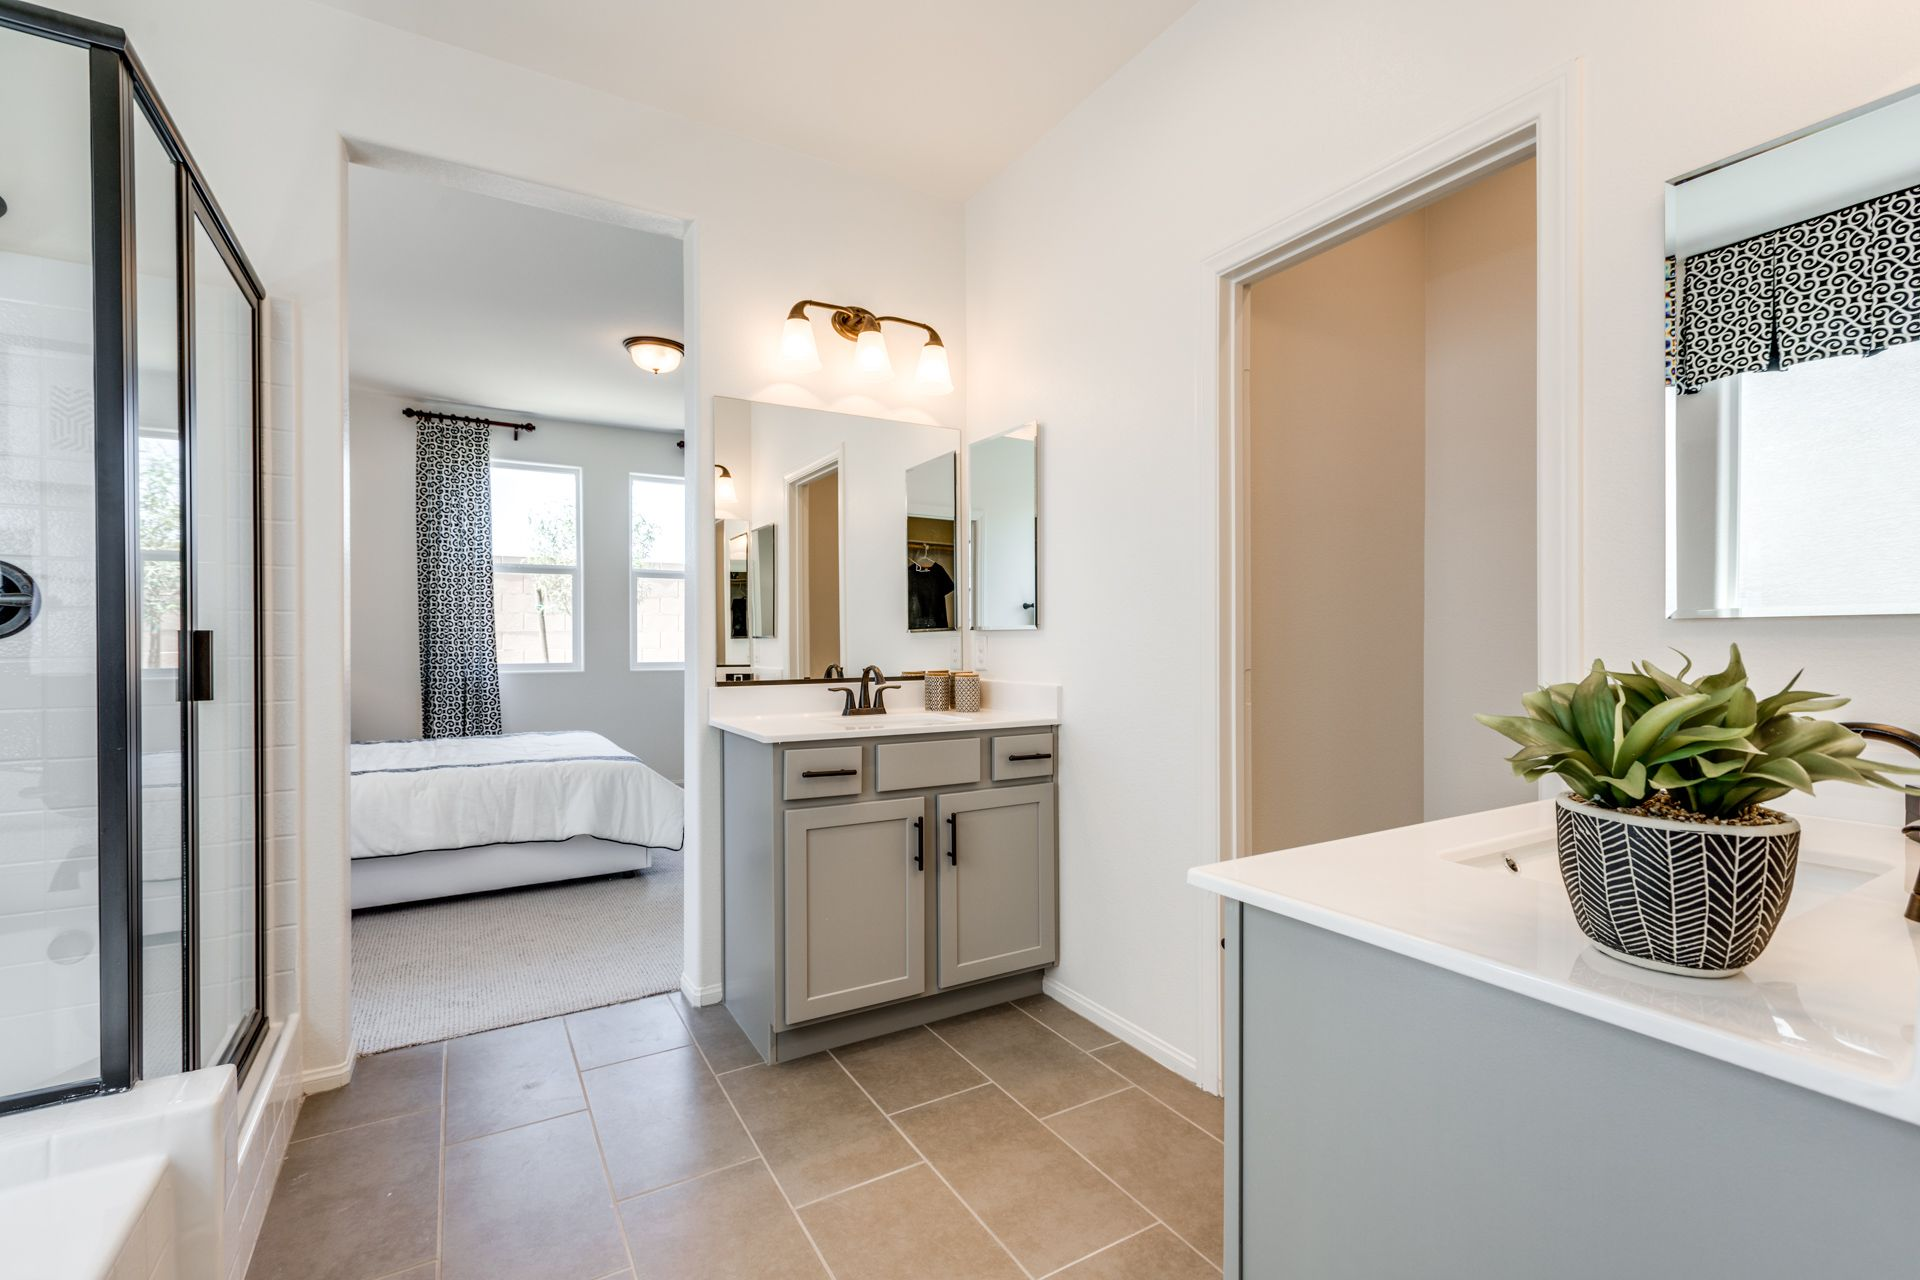 Bathroom featured in the Residence 1763 By Harmony Homes - Las Vegas in Las Vegas, NV